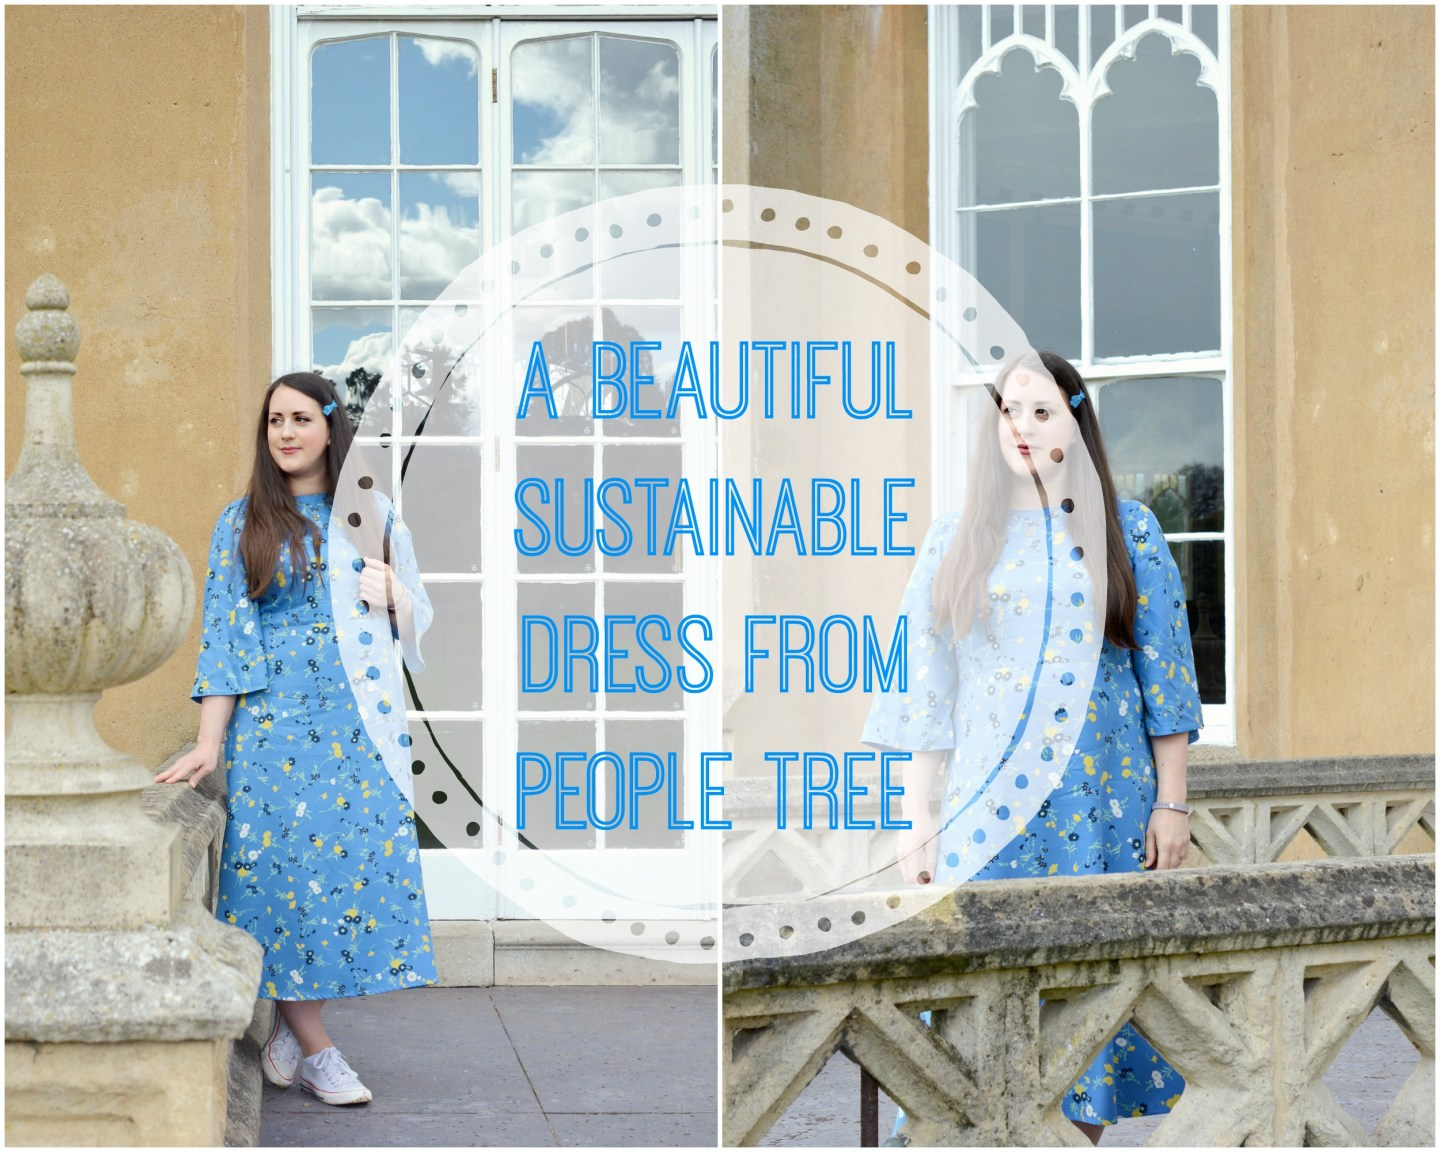 A Beautiful Sustainable and Ethical Dress from People Tree